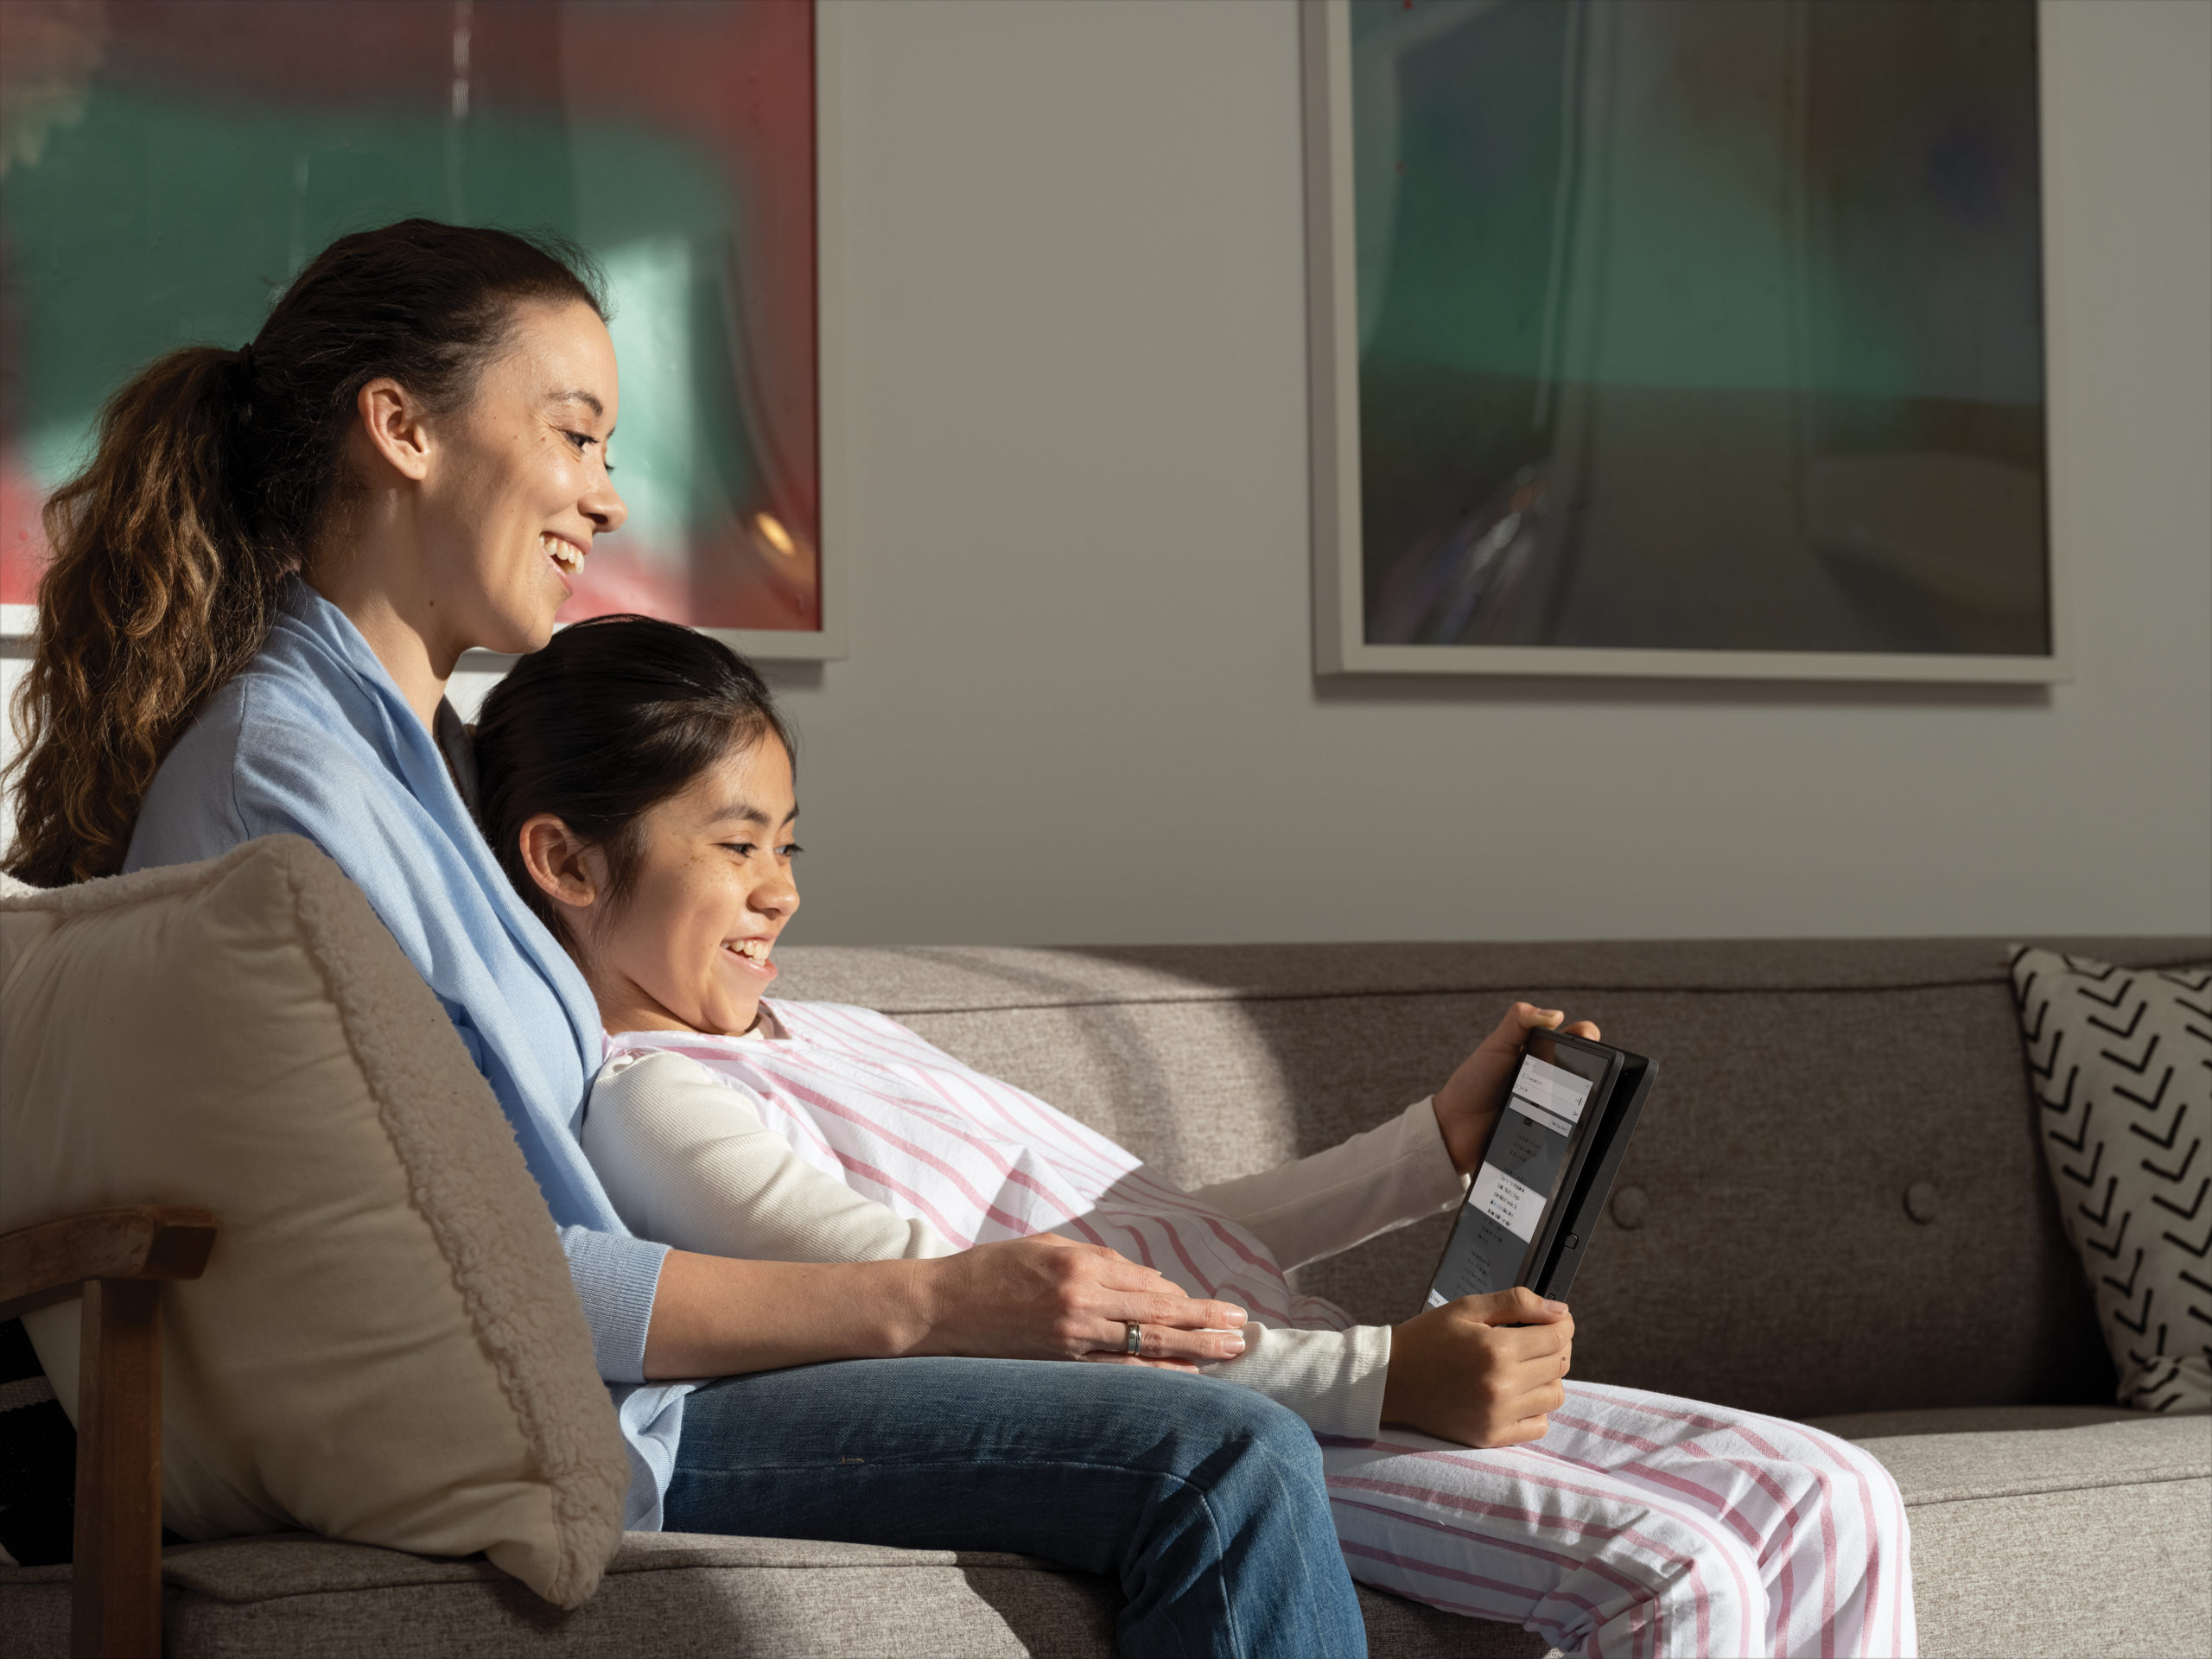 A mother and her daugther reading a webpage with Immersive Reader in Microsoft Edge. The Acer Travelmate B311 2-in-1 is in tablet mode